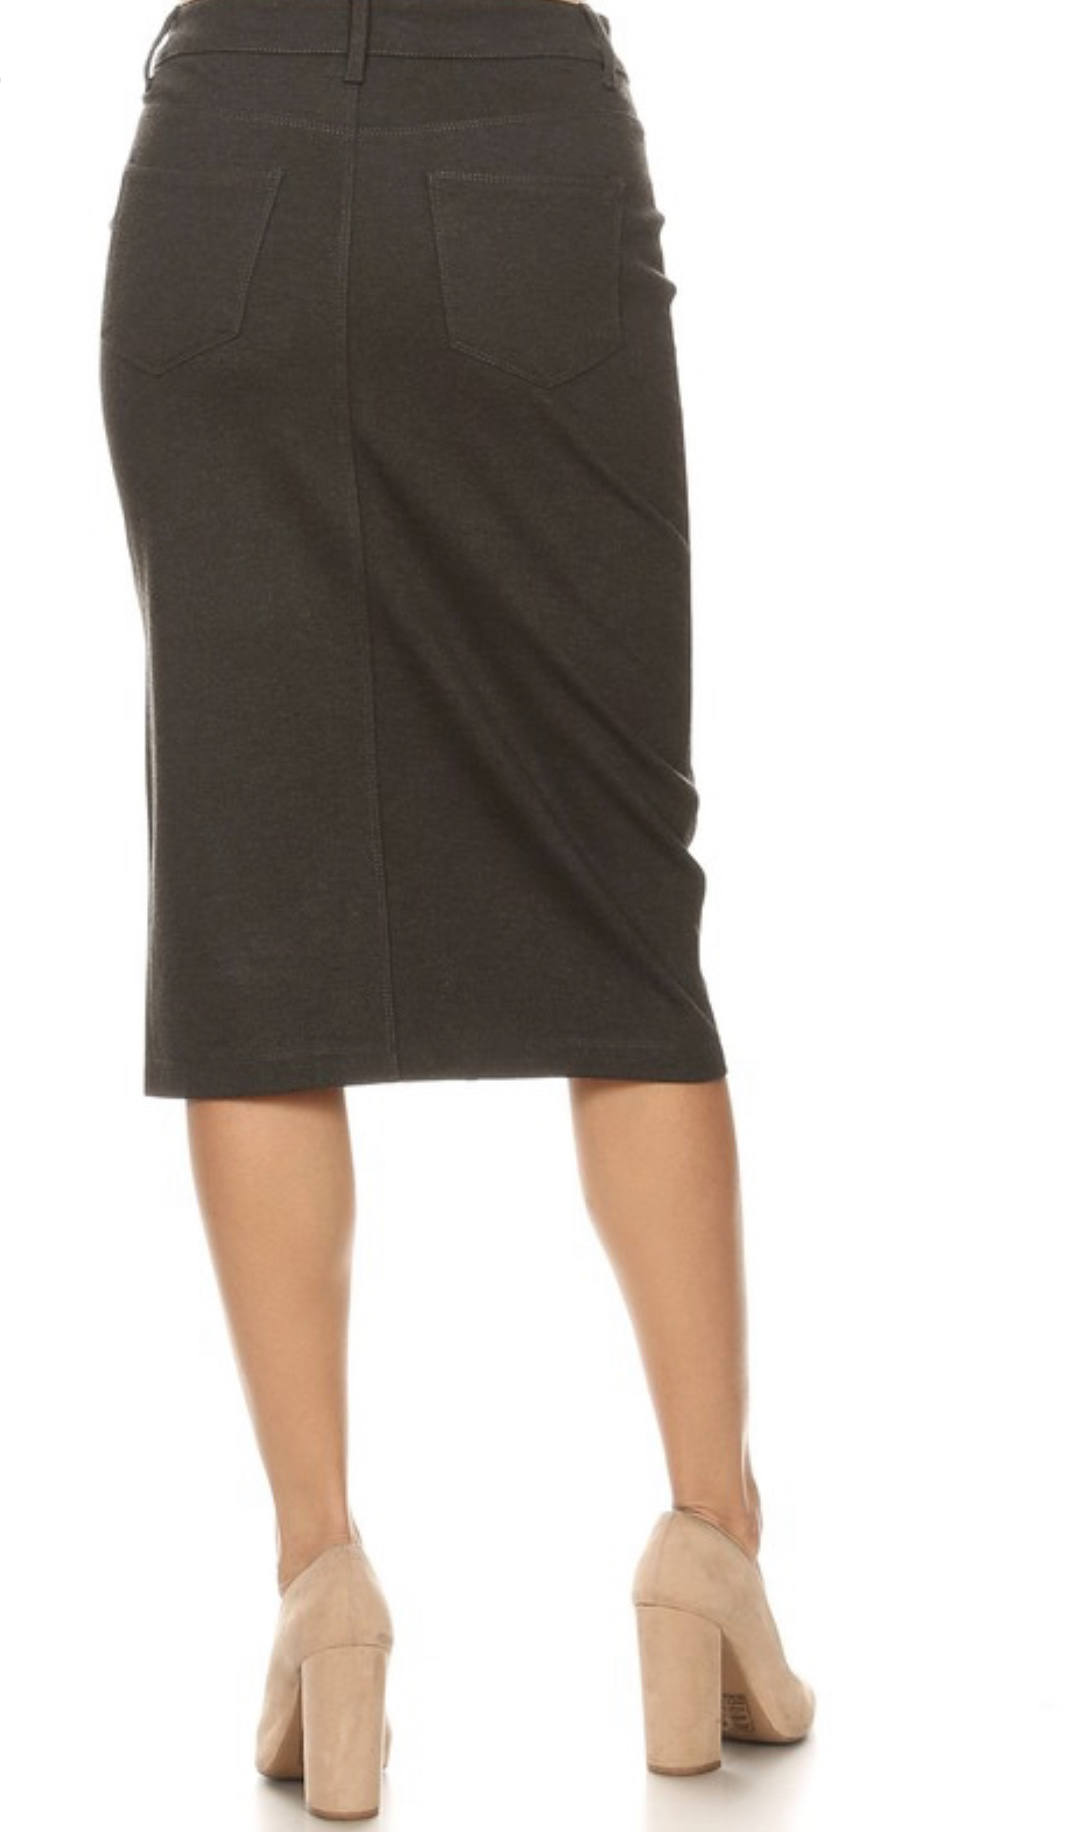 Heathers Gray twill stretch pencil skirt